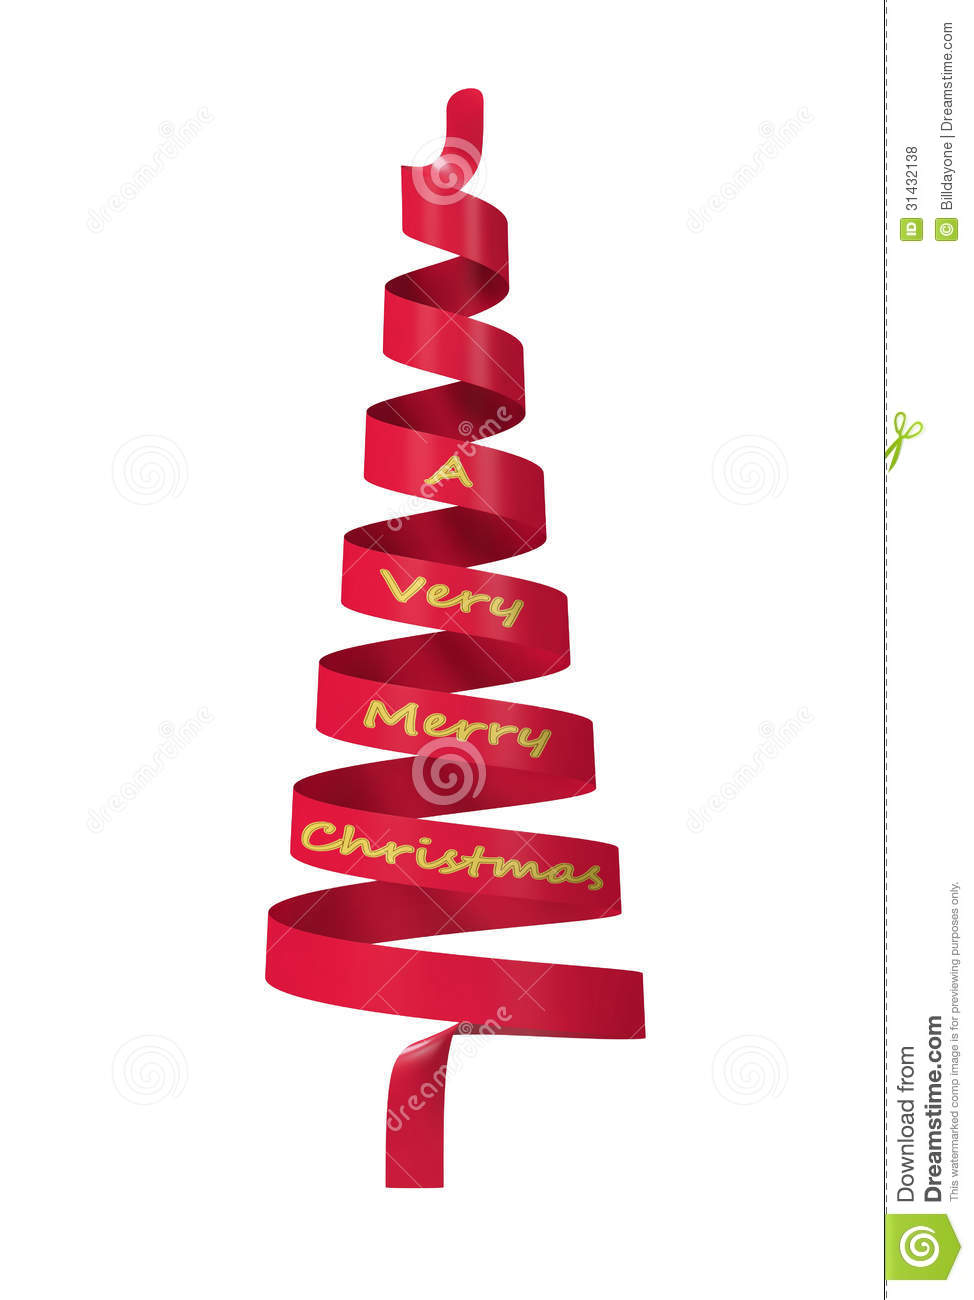 Red ribbon christmas tree royalty free stock photos for Red ribbon around tree